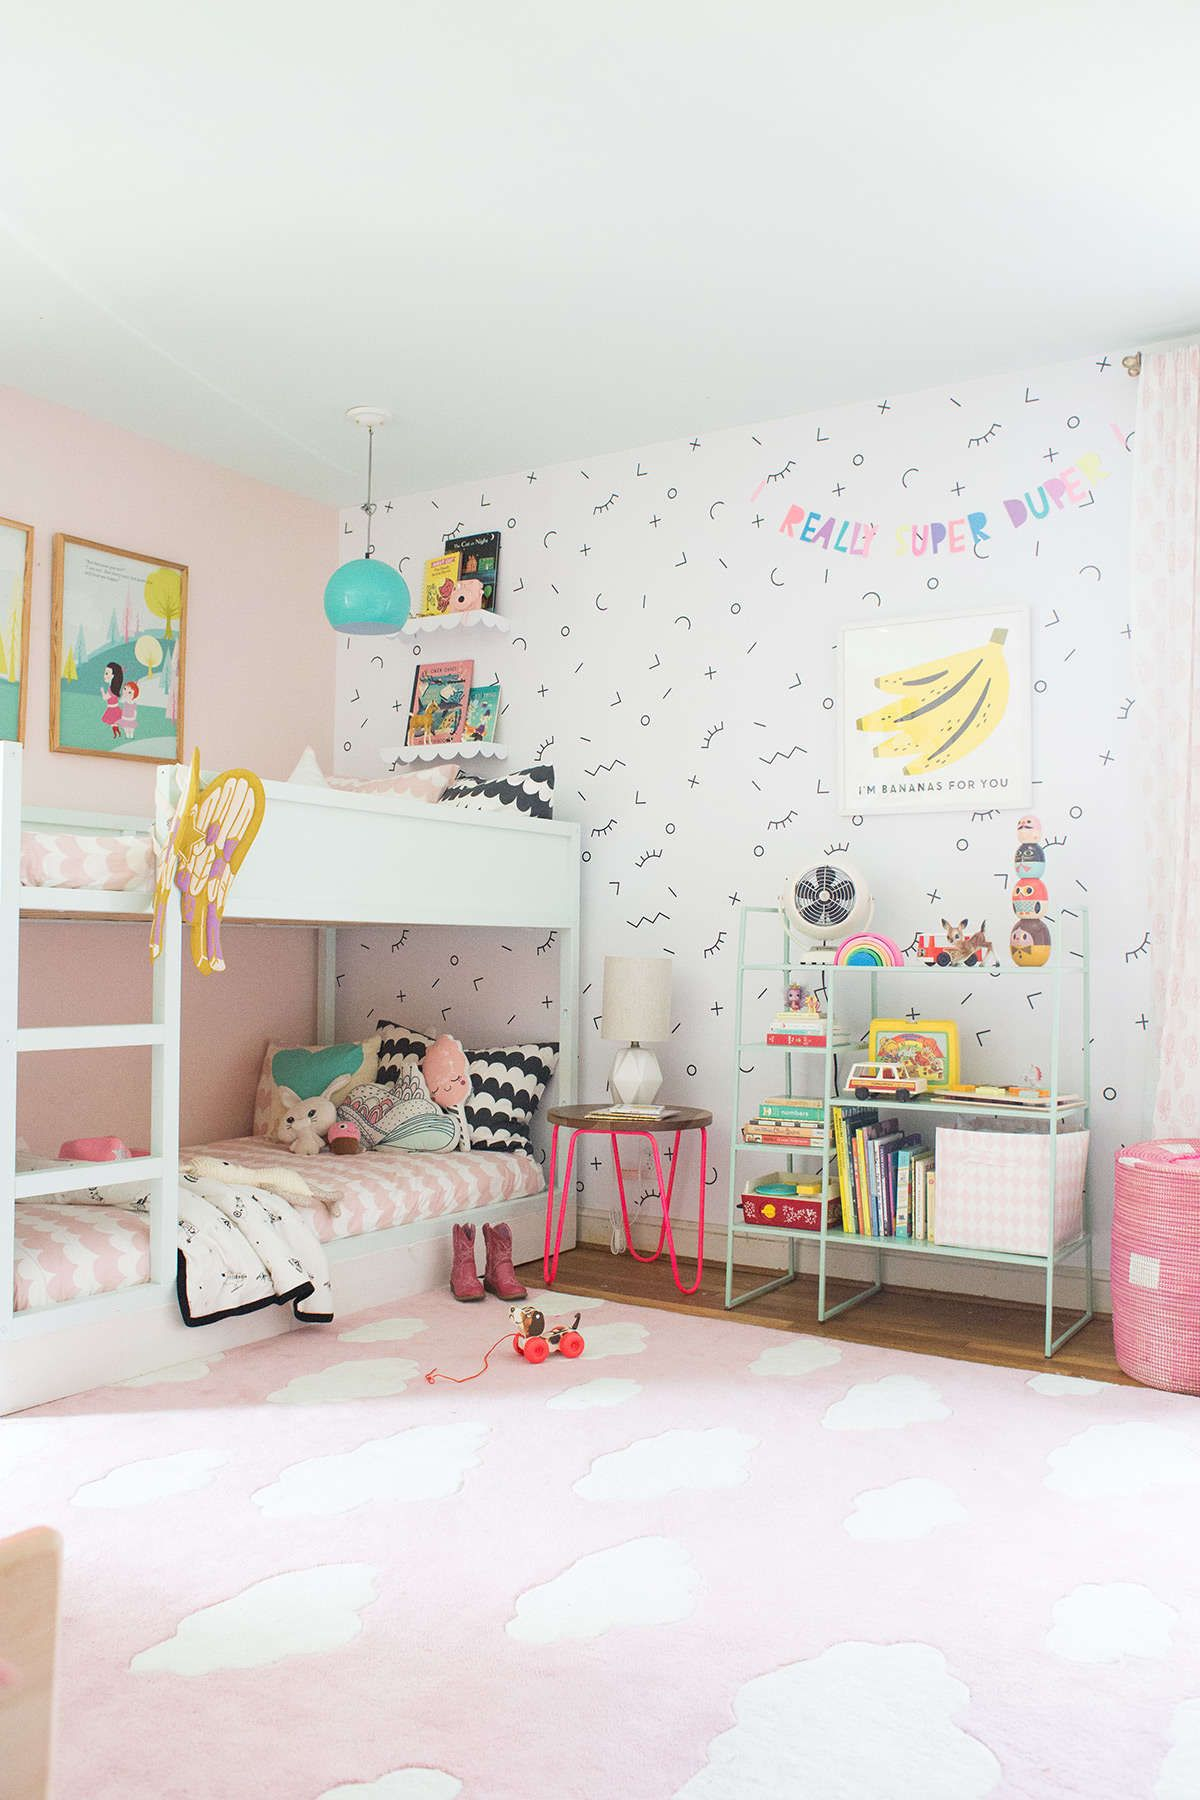 A Shared Bedroom With Bunk Beds Children S Rooms Kids Bedroom